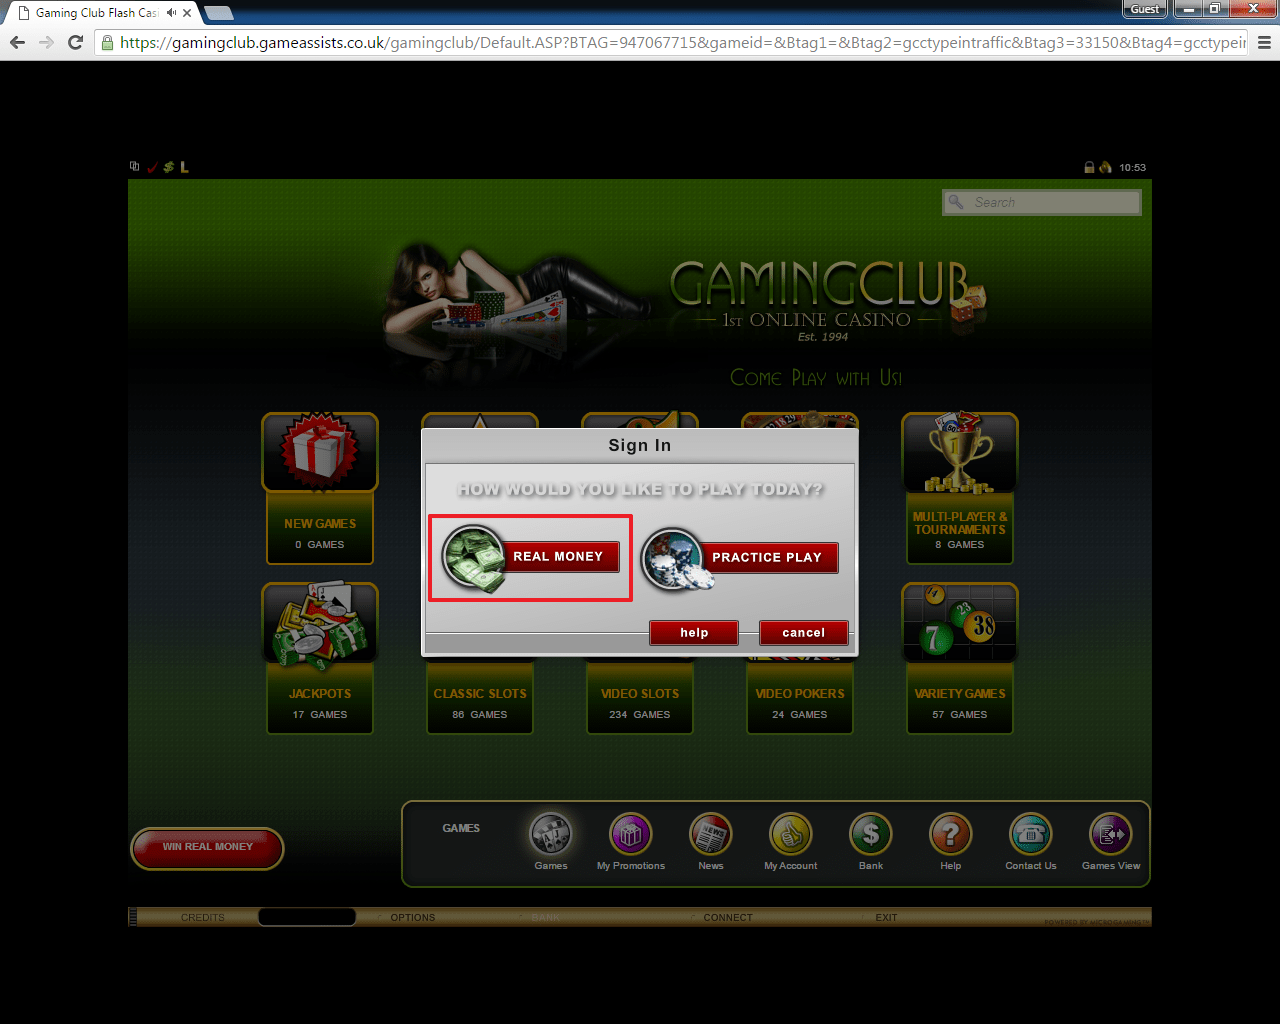 Casino Club Login